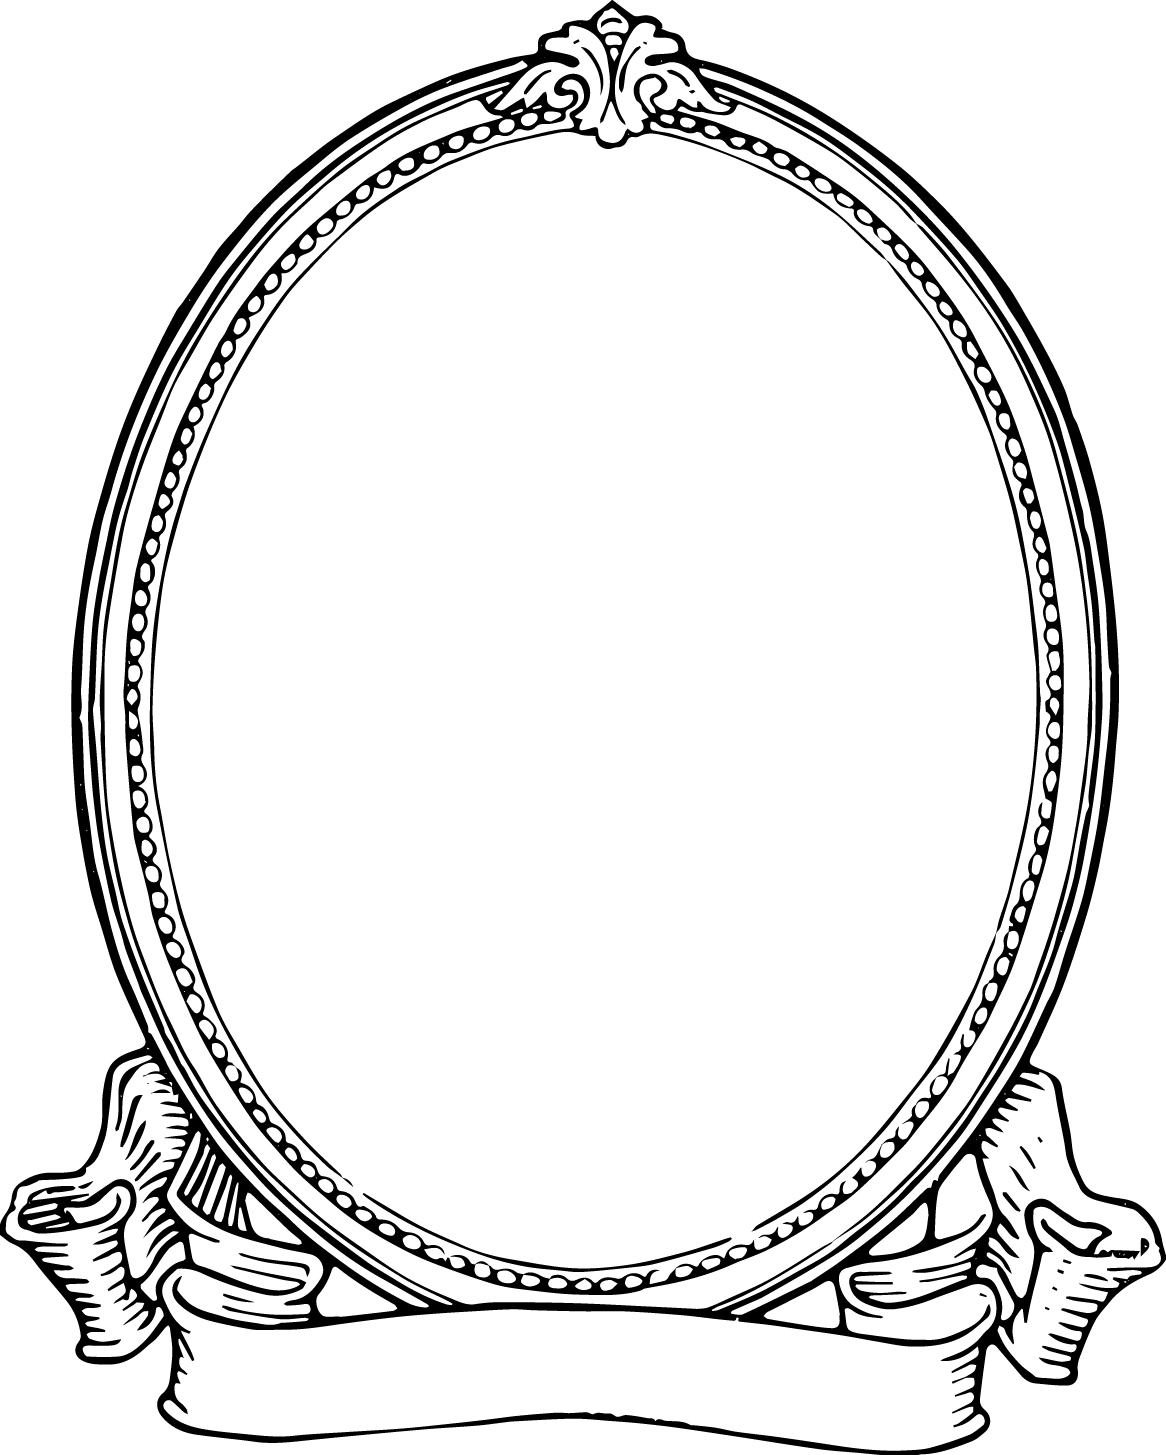 1166x1455 Vintage Photo Frame Oh So Nifty Vintage Graphics